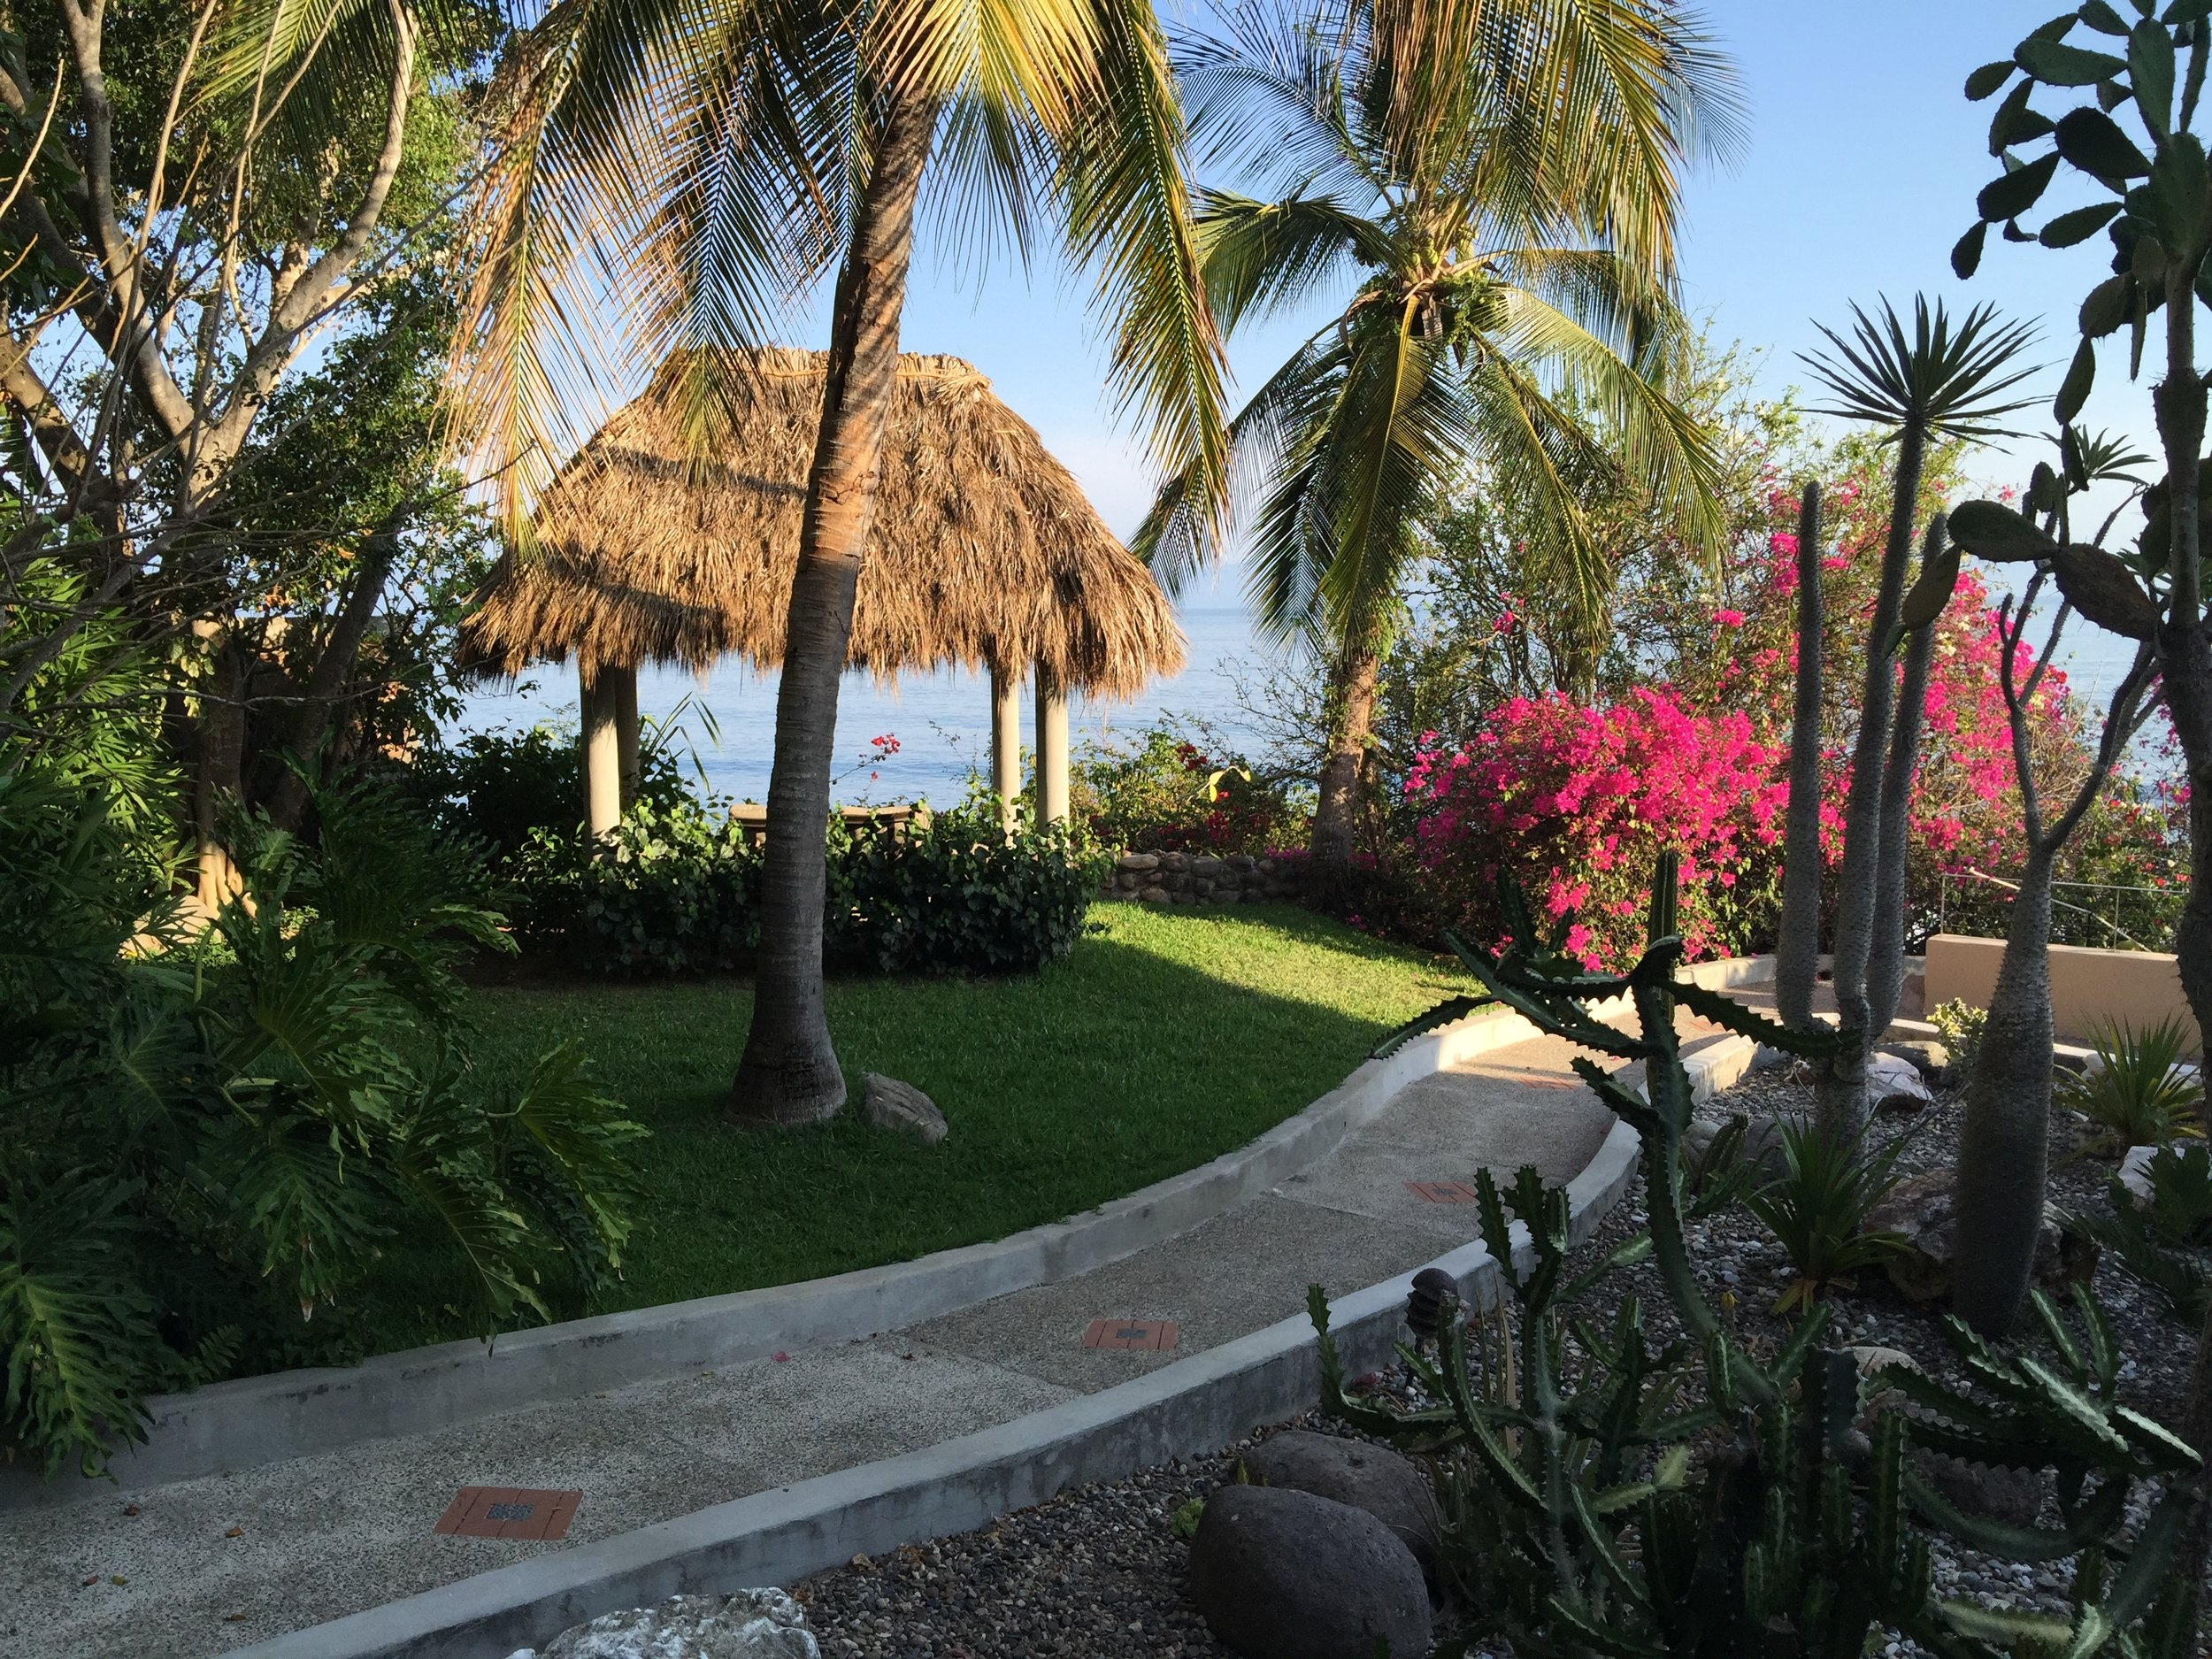 2 acre tropical garden with walking paths.